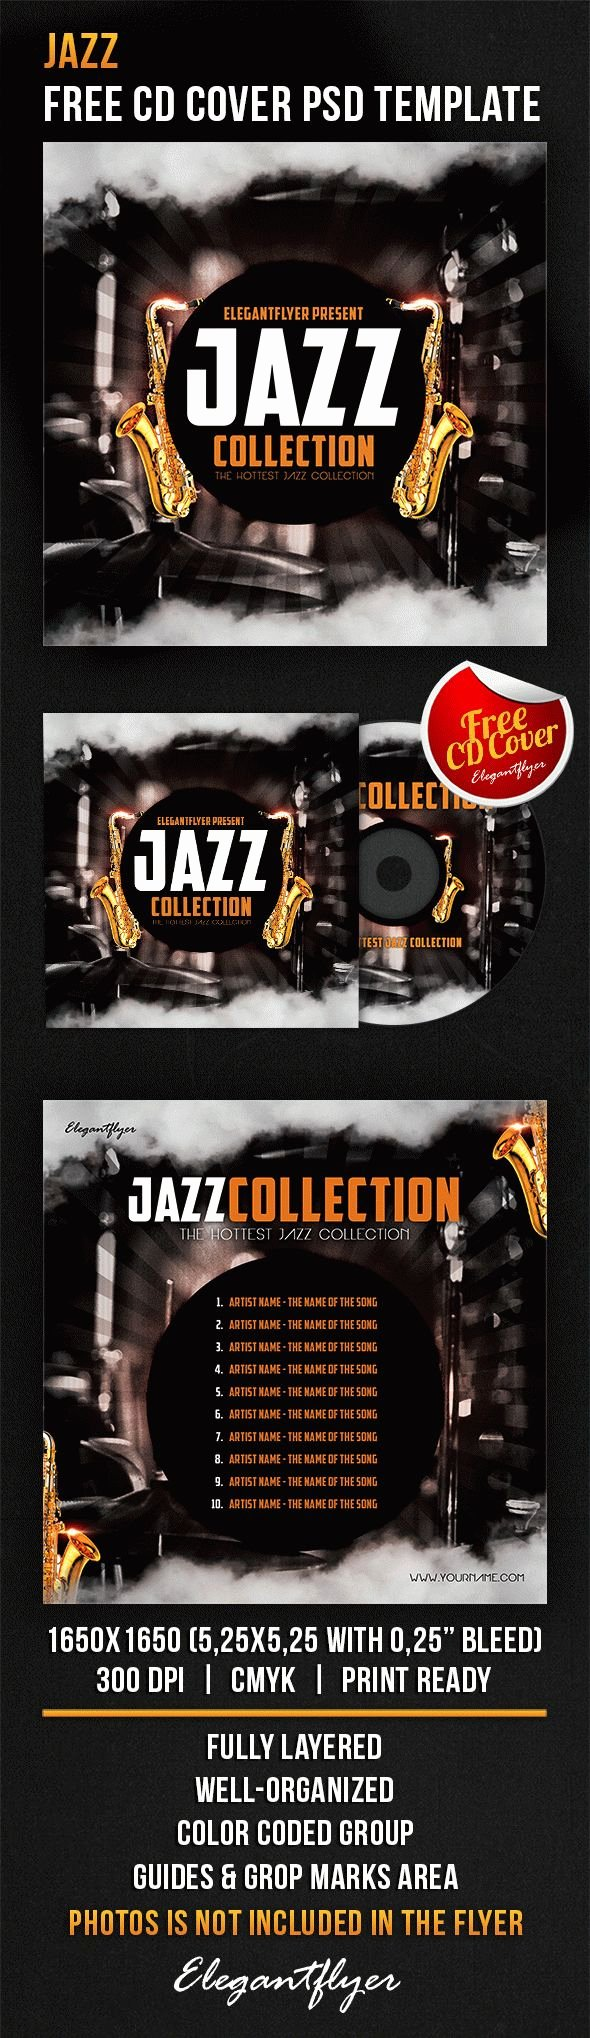 Cd Cover Template Psd Elegant Jazz – Free Cd Cover Psd Template – by Elegantflyer